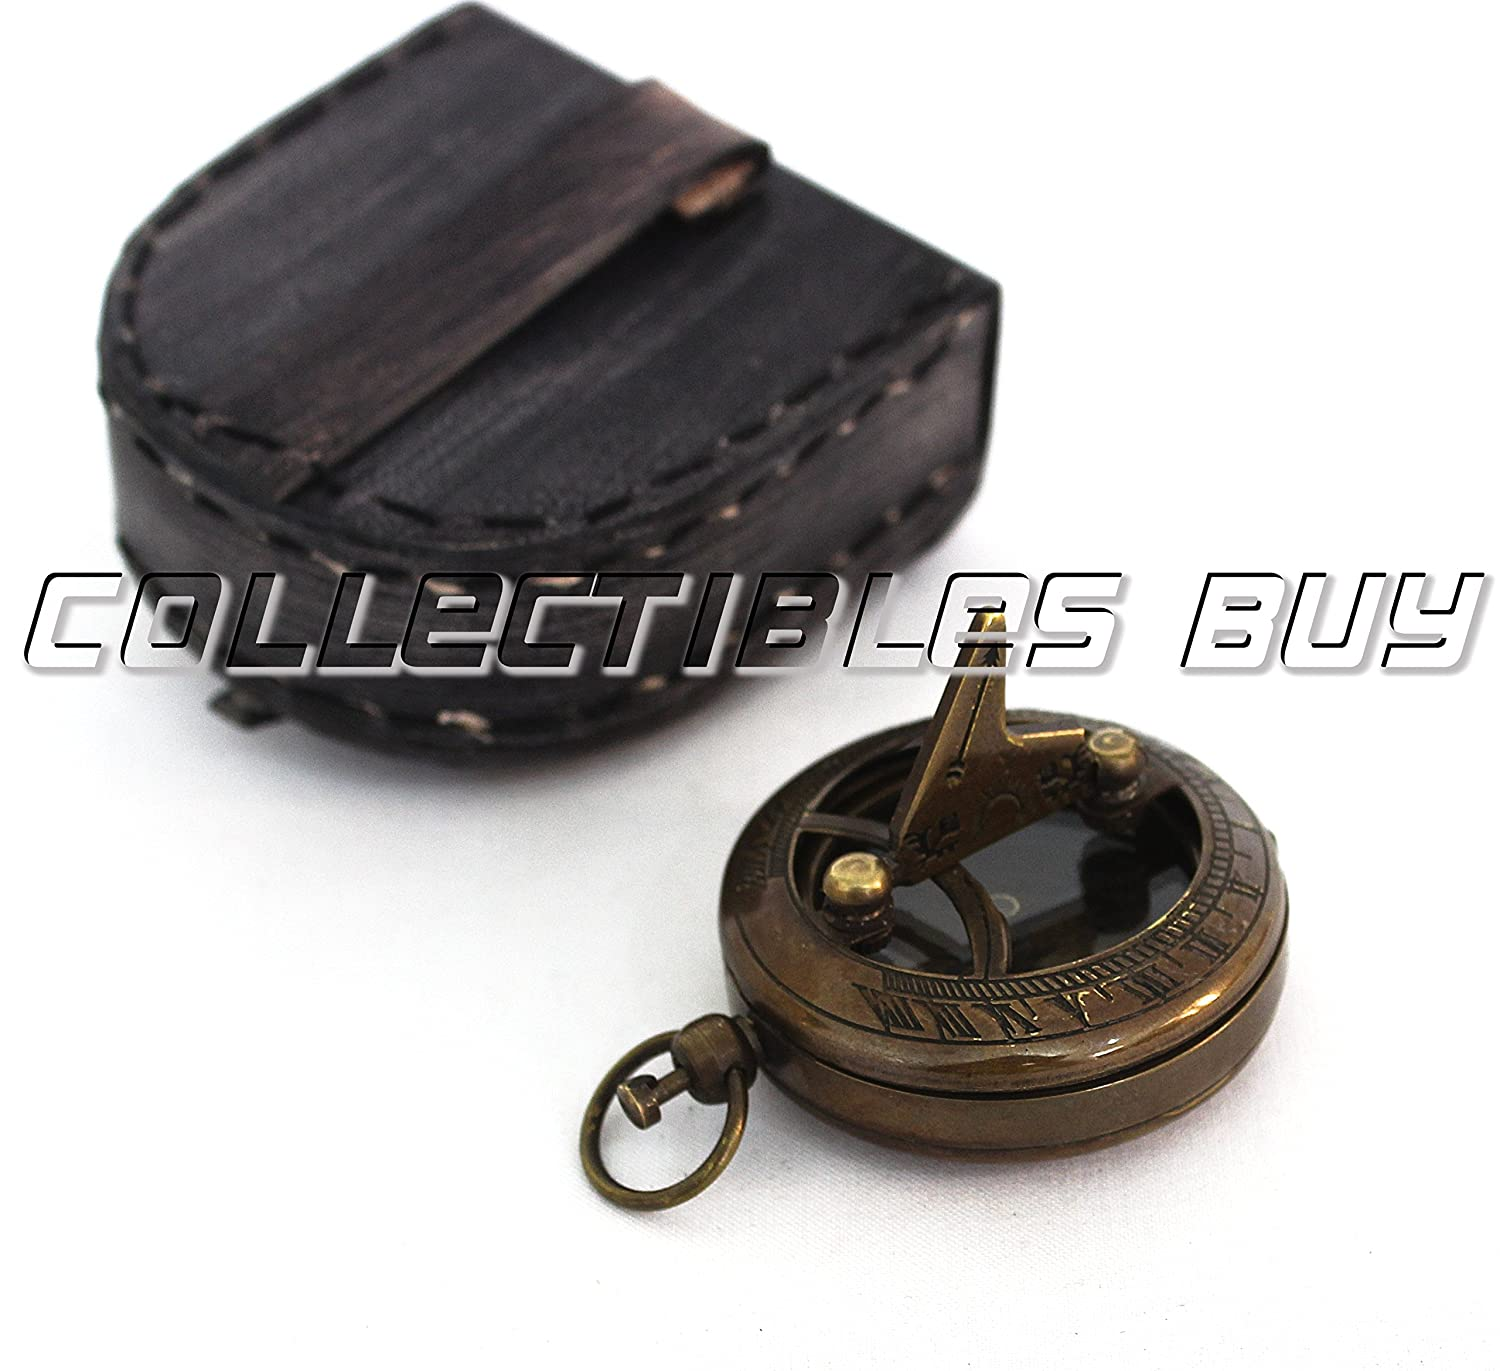 Nautical Pocket Sundial Compass Brass Compass Marine Leather Cover Tool Collectibles Buy ZCO378